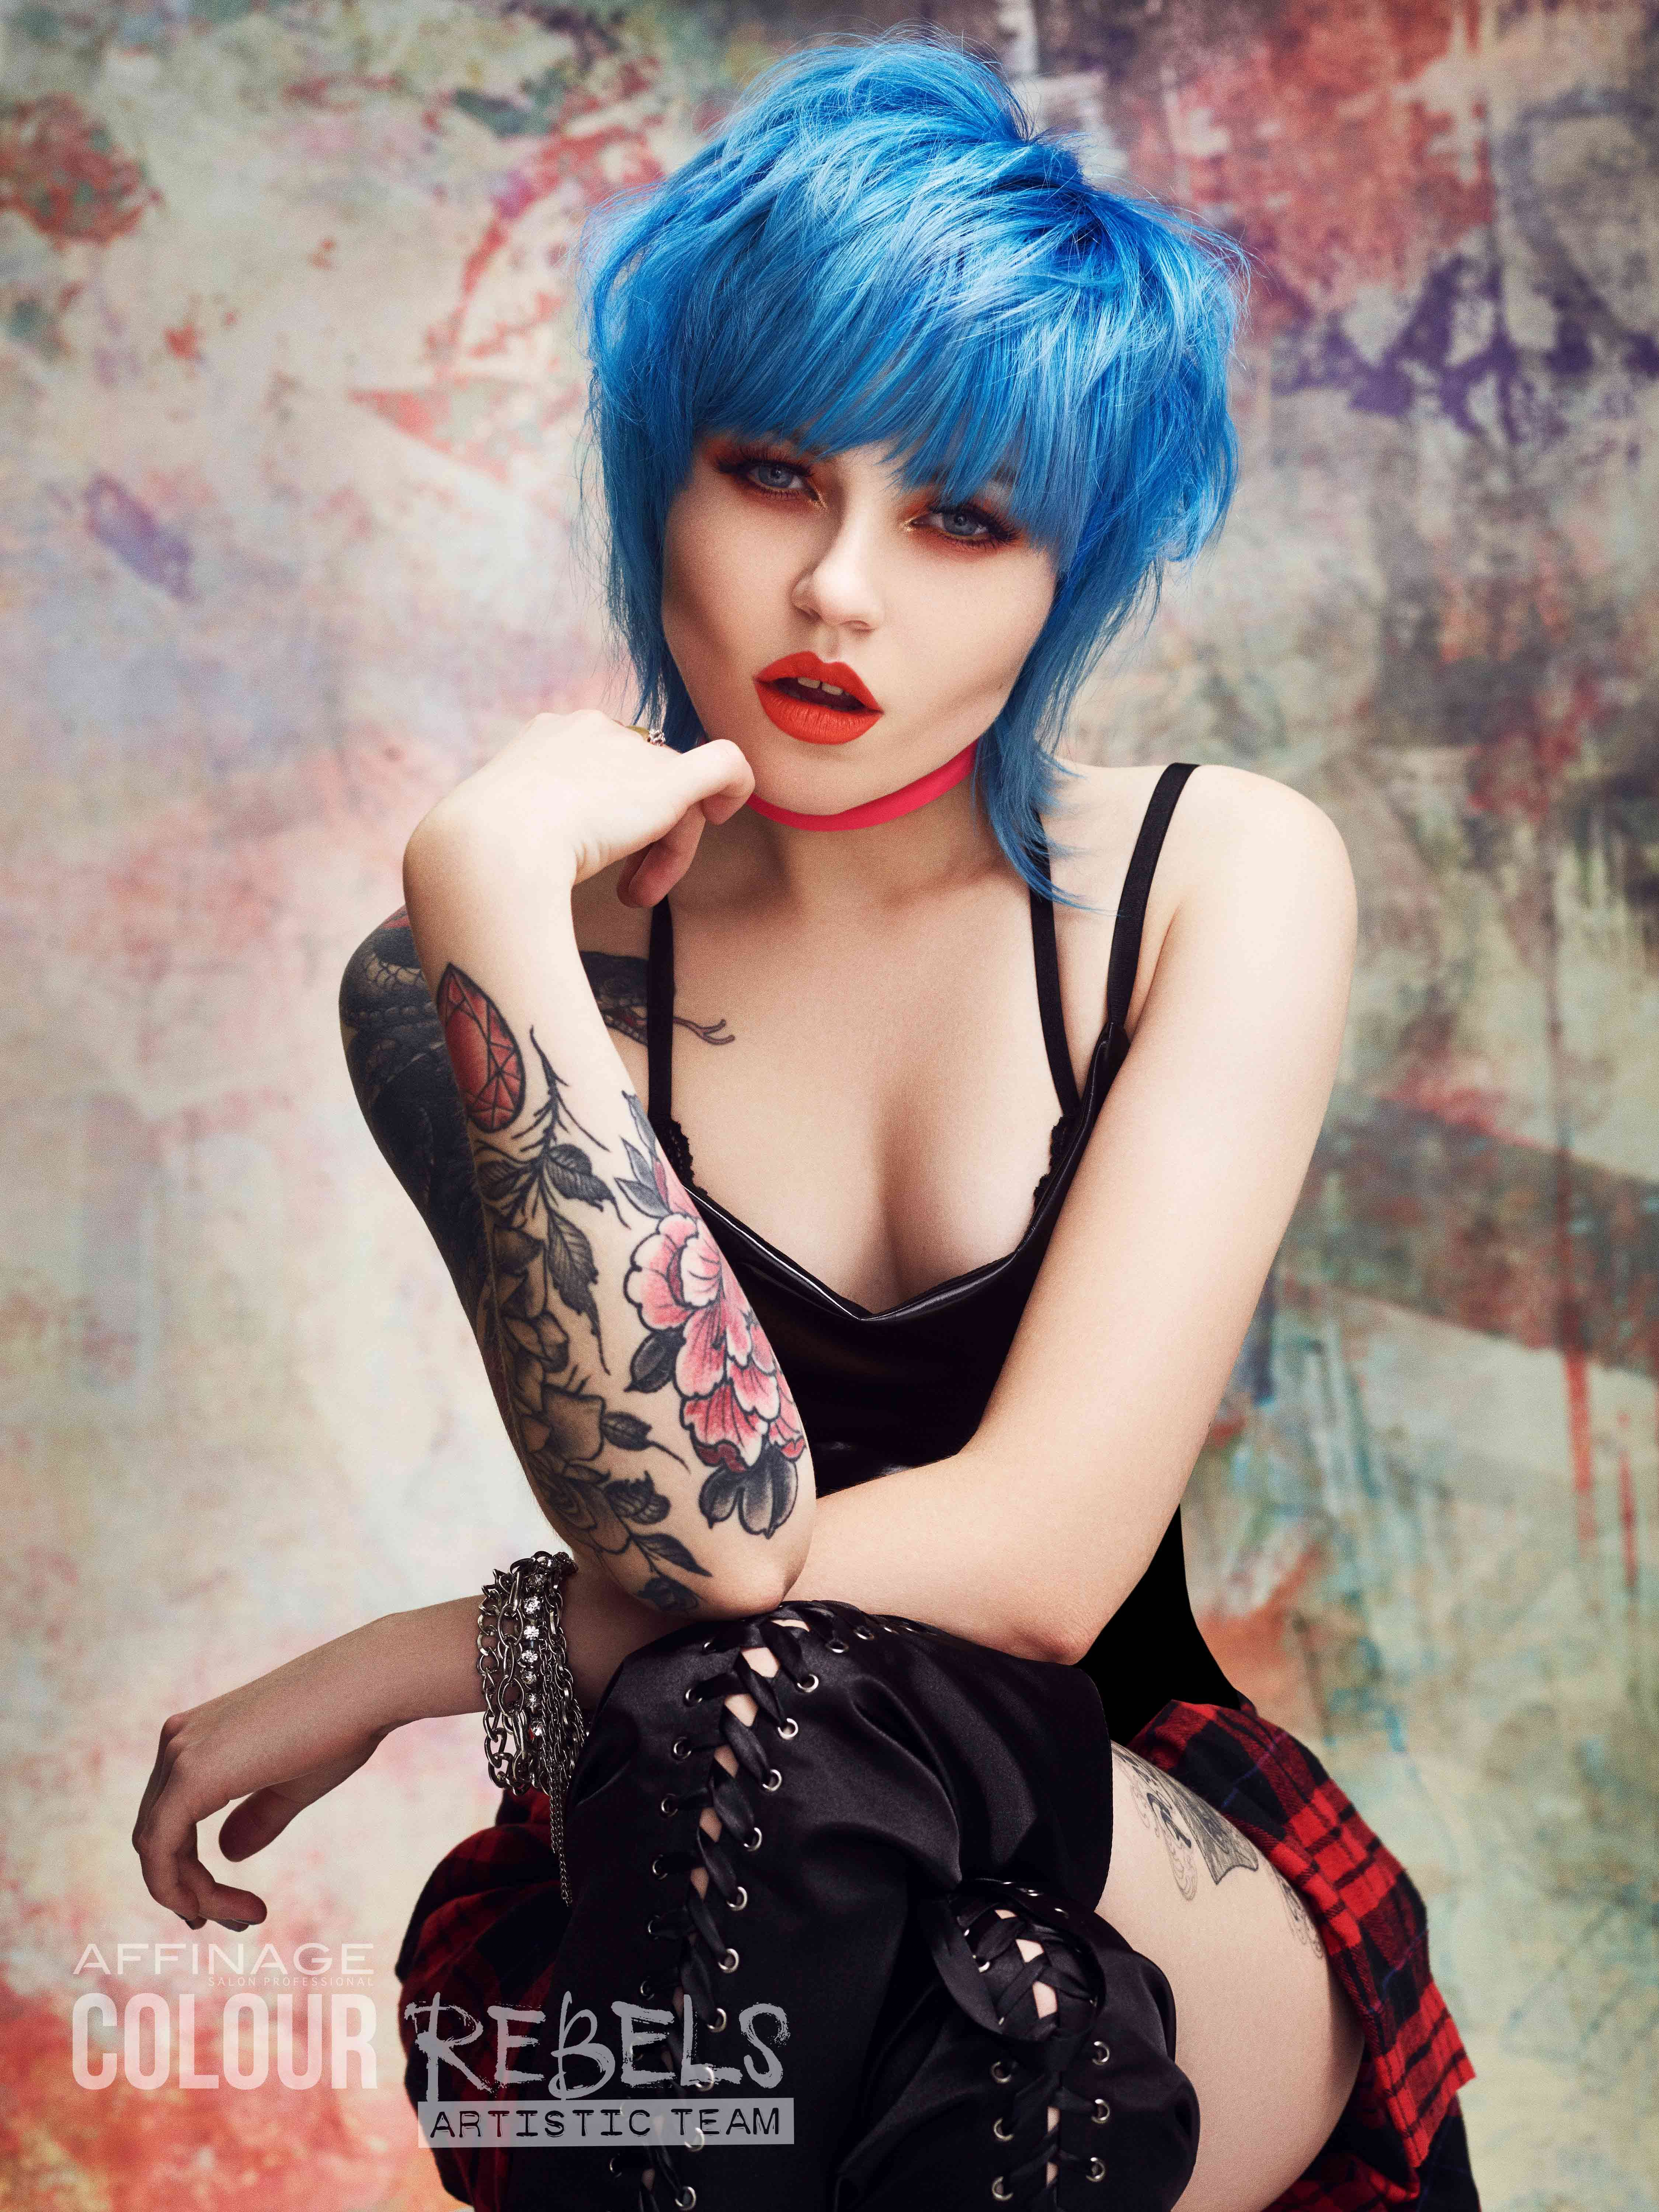 Affinage Colour Rebels & Tracey DevineSmith Rebelution